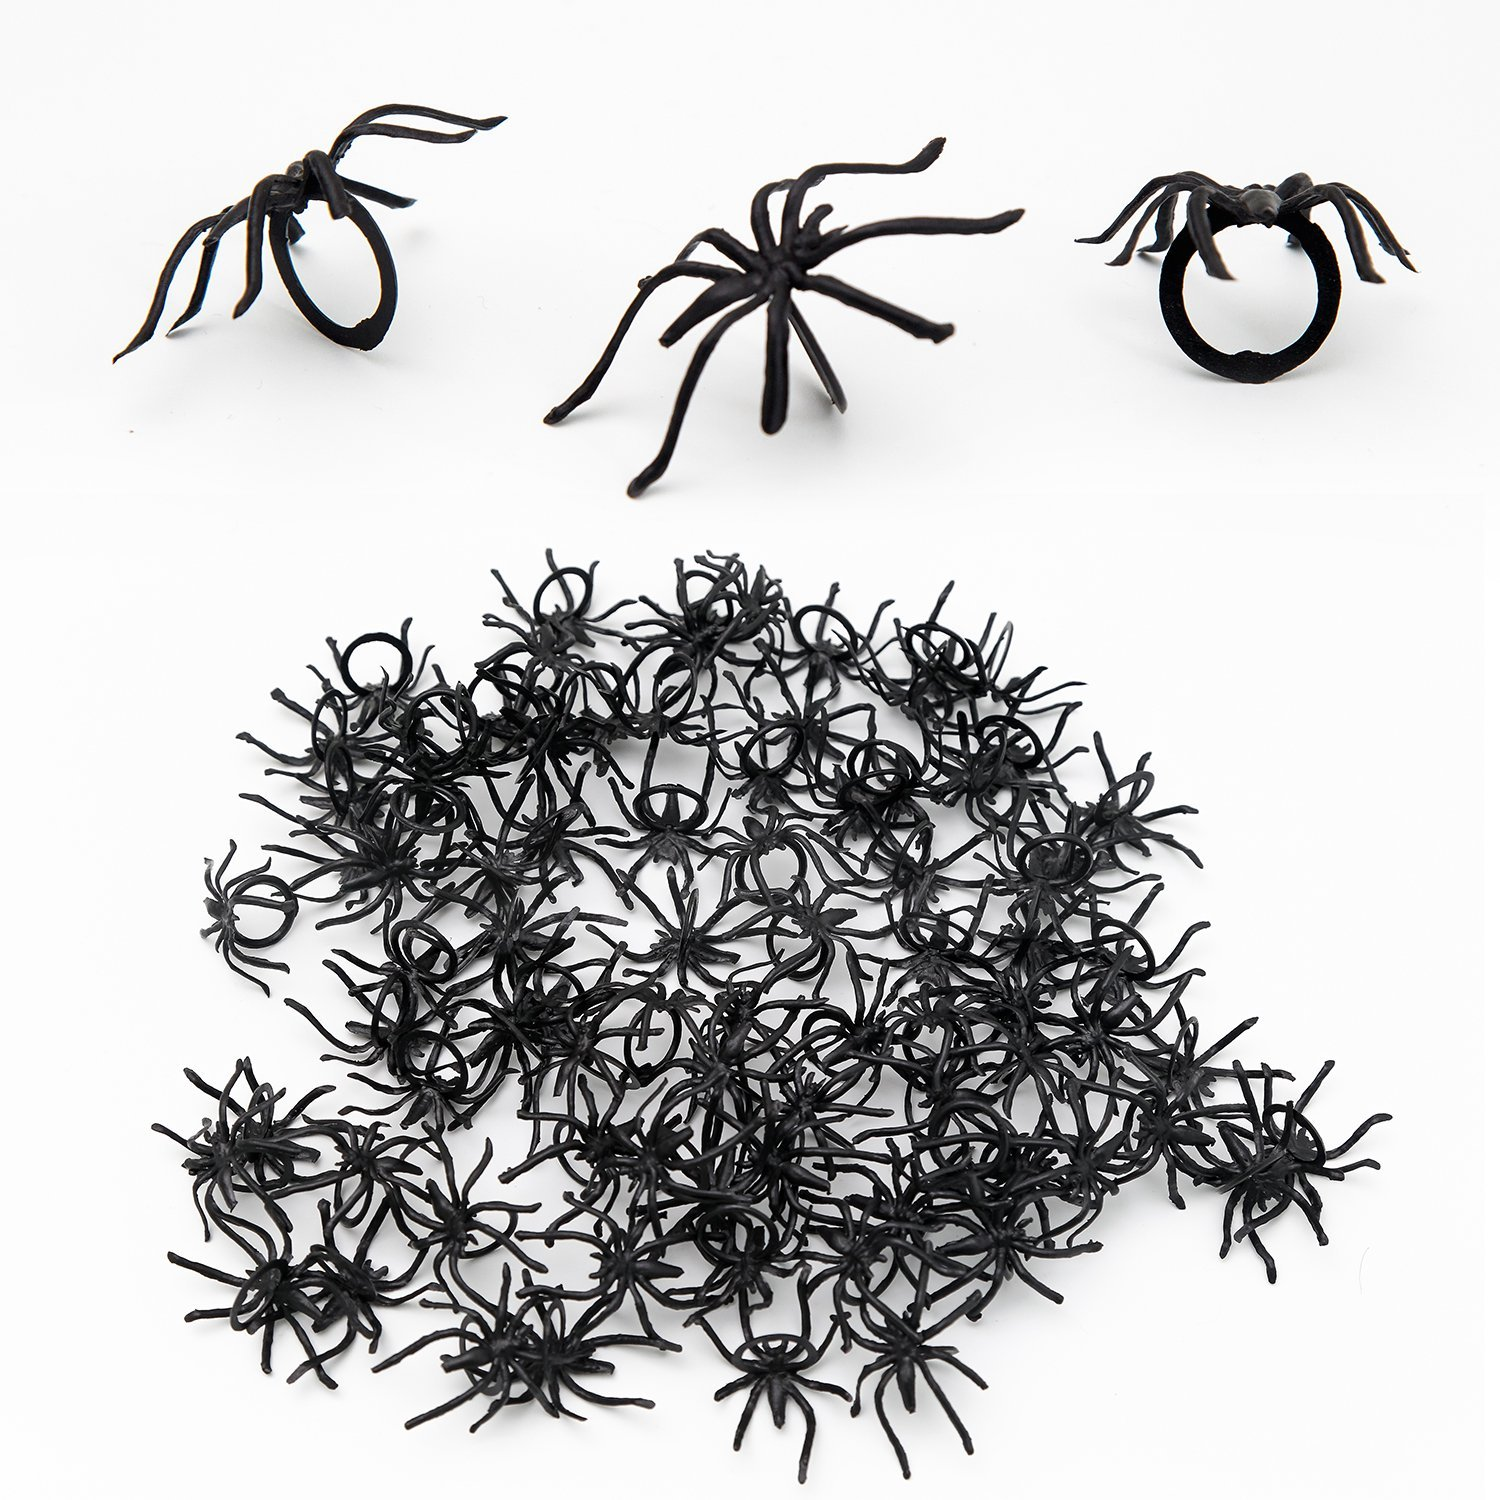 120 Pieces Spider Rings Halloween Party Favors Realistic Plastic Spider Rings Toys Halloween Decorations Scafiv-1